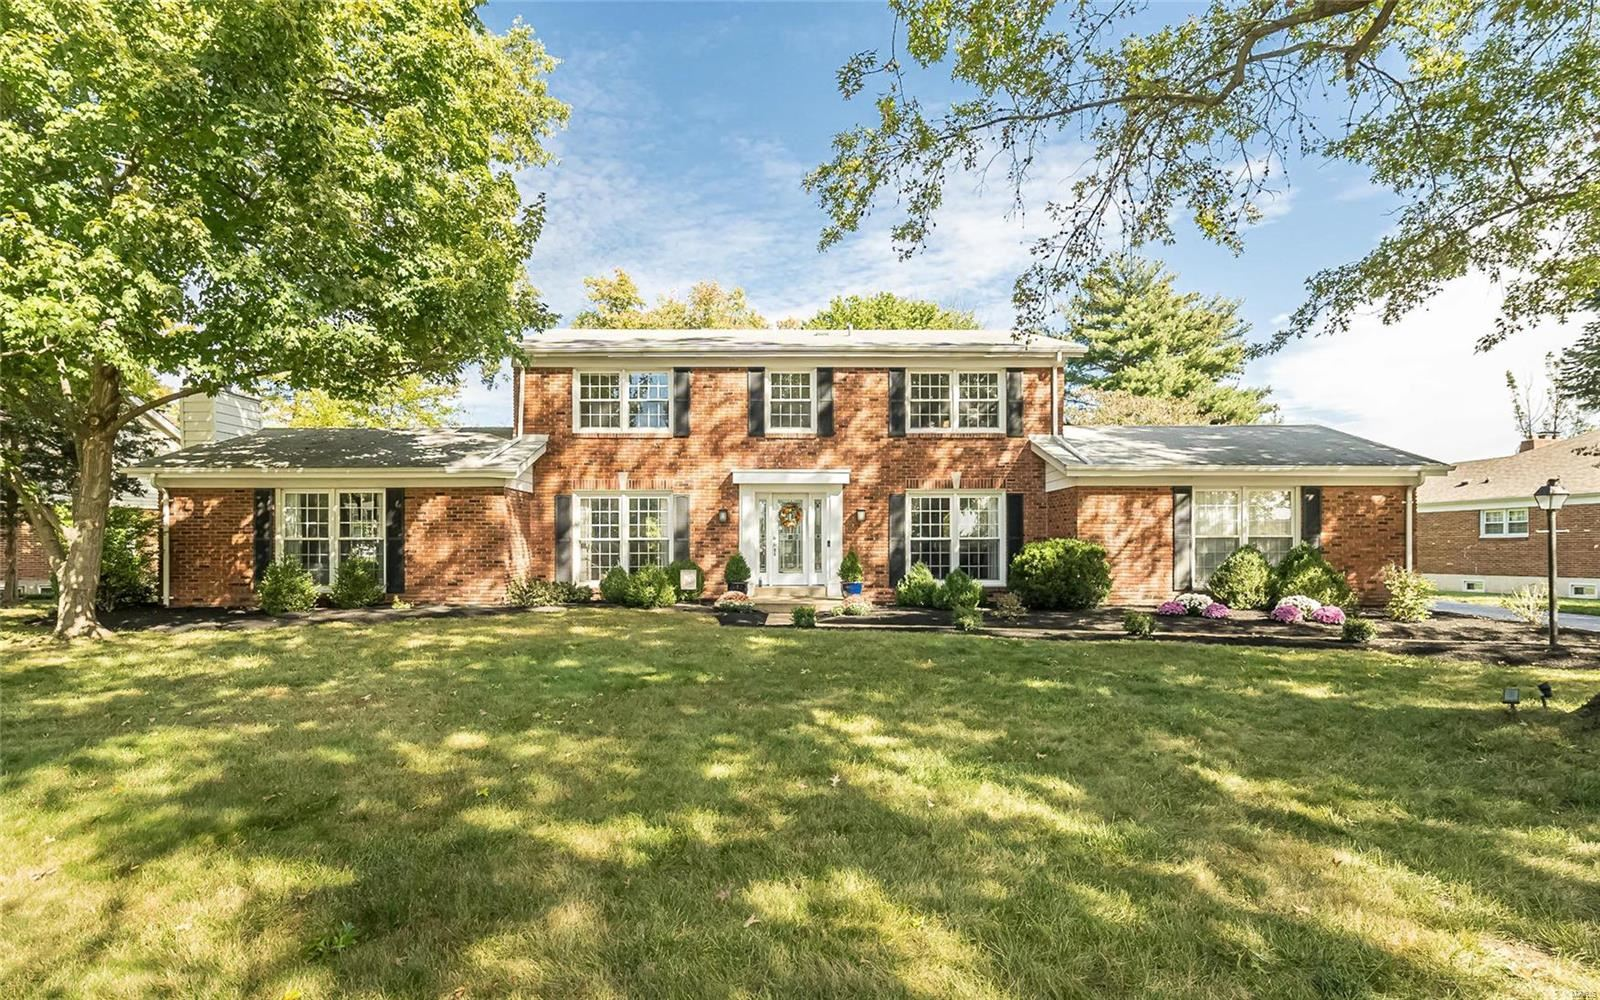 14199 Cross Trails, Chesterfield, MO 63017 - MLS#: 21062636